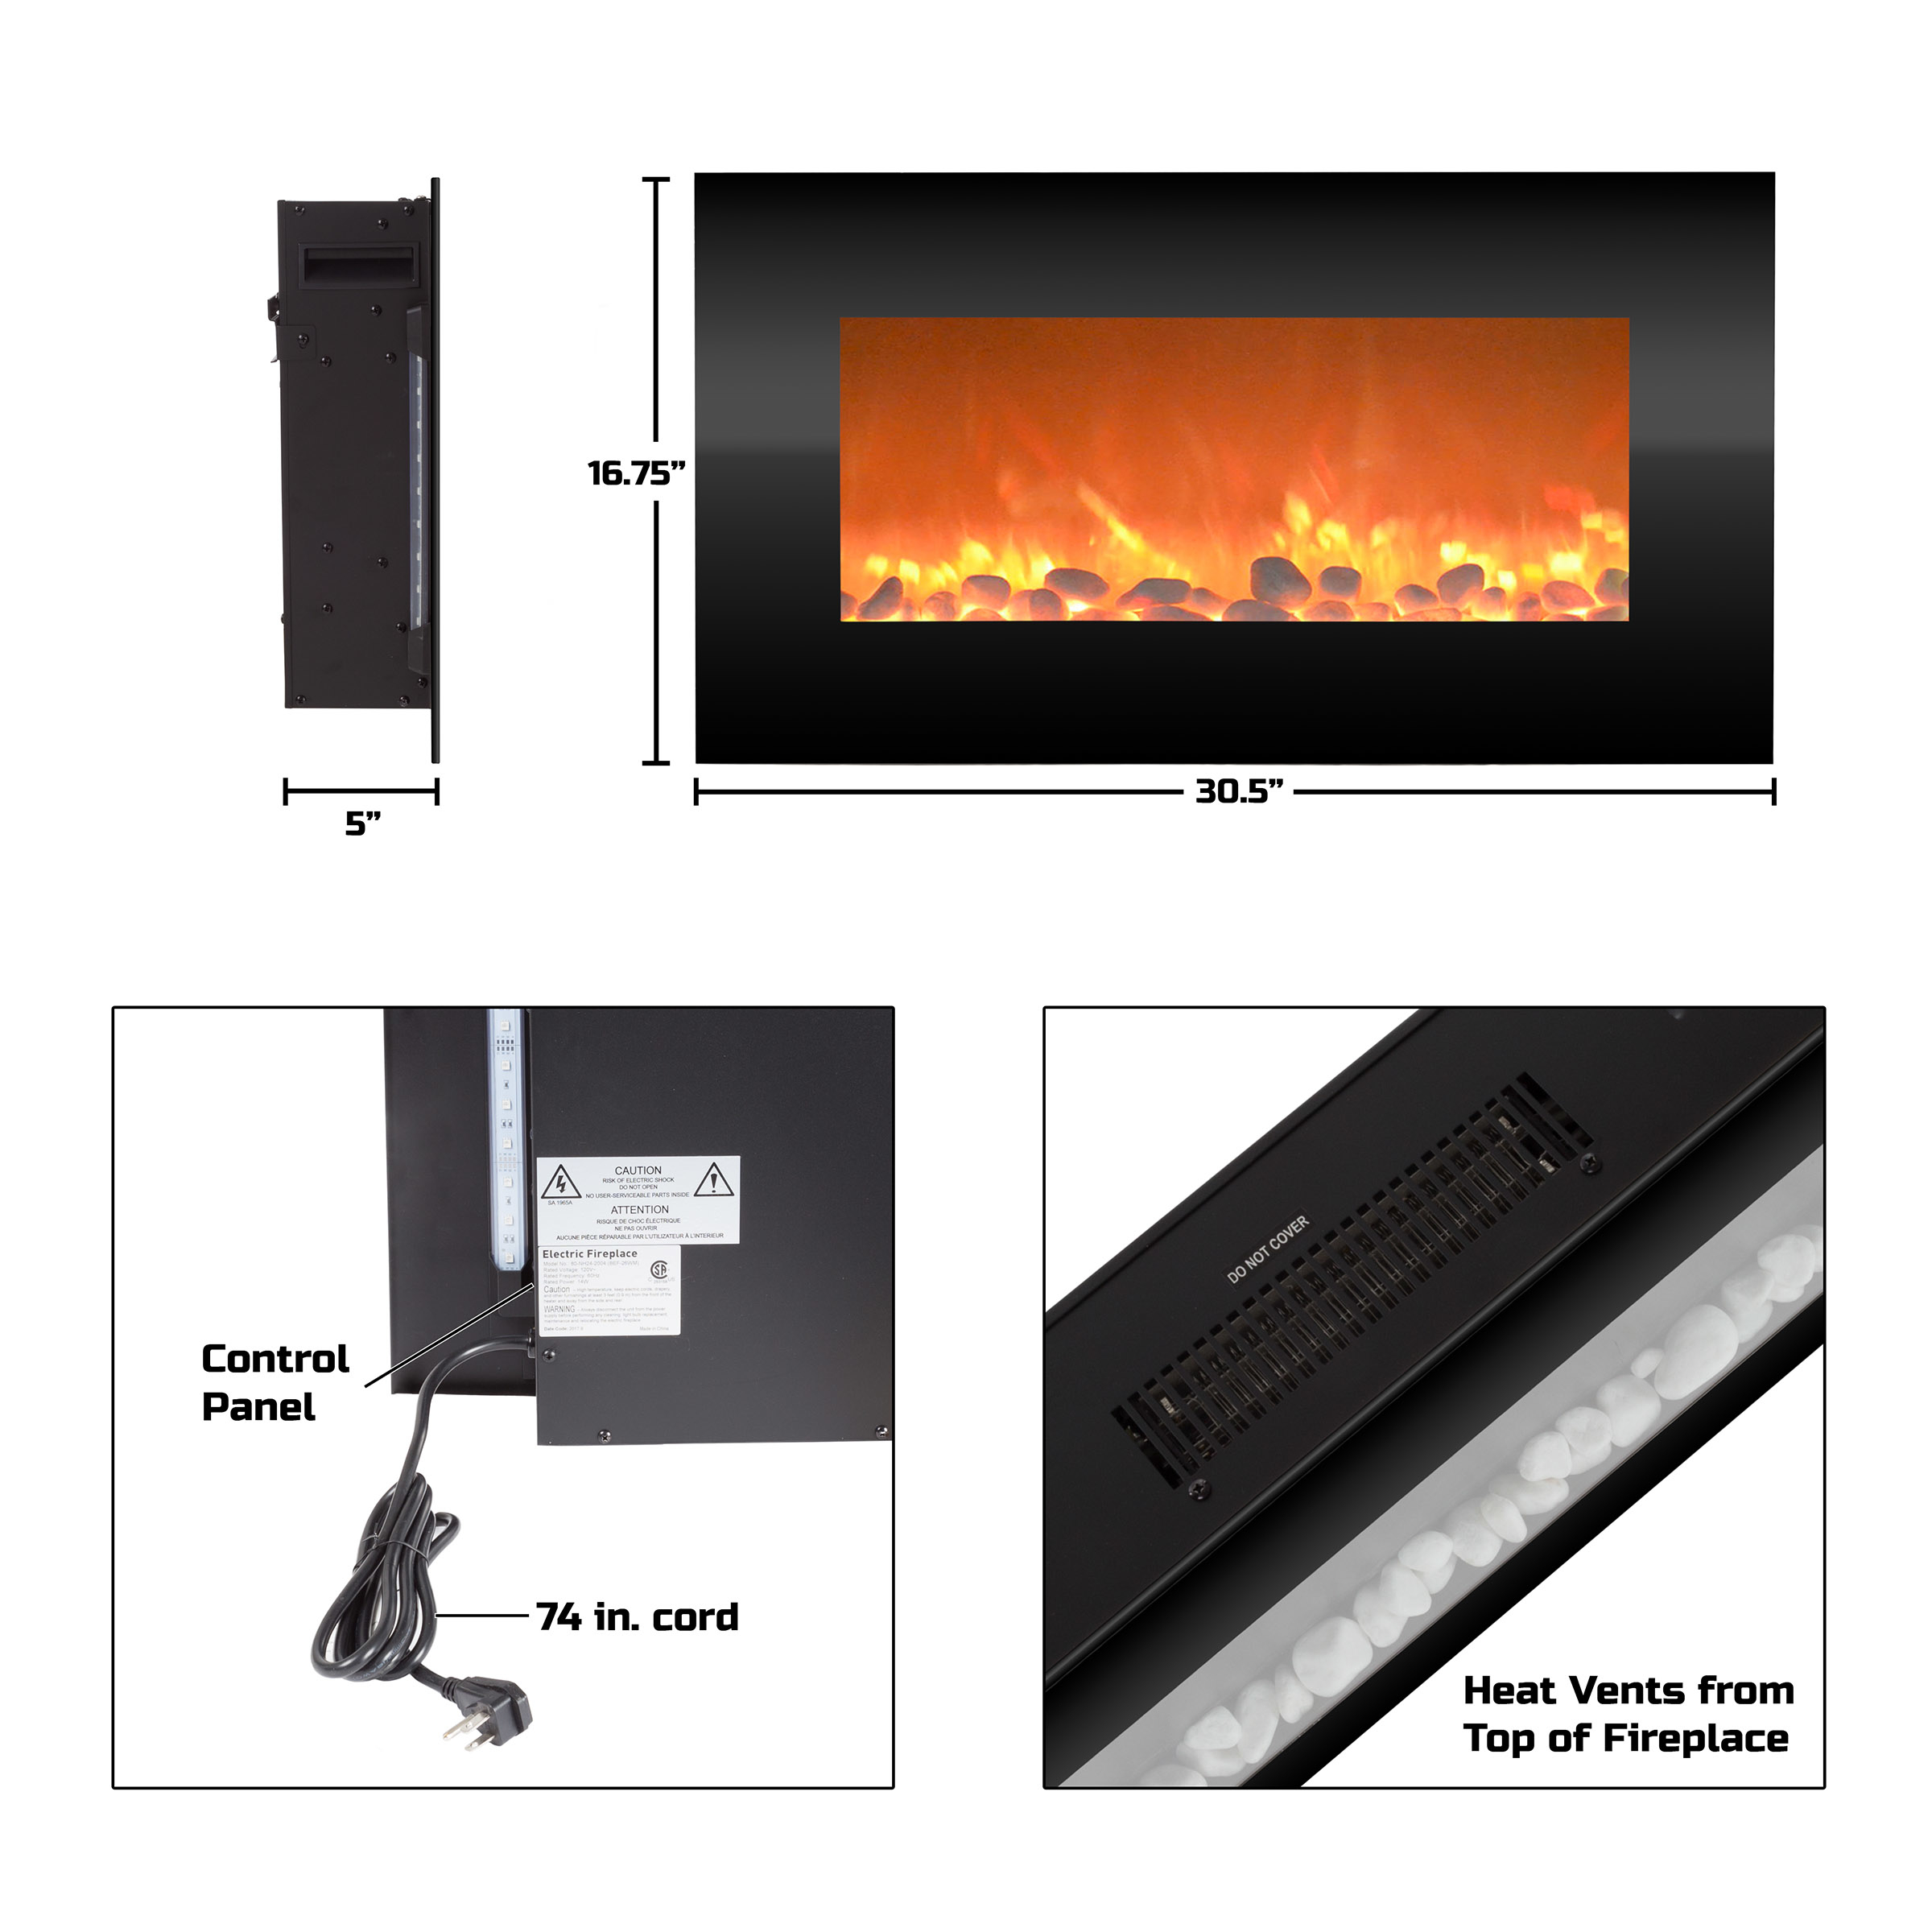 Electric Fireplace Wall Mounted Adjustable Heat Remote Backlight Colors Timer LED Flames 30.5 Inches (1)